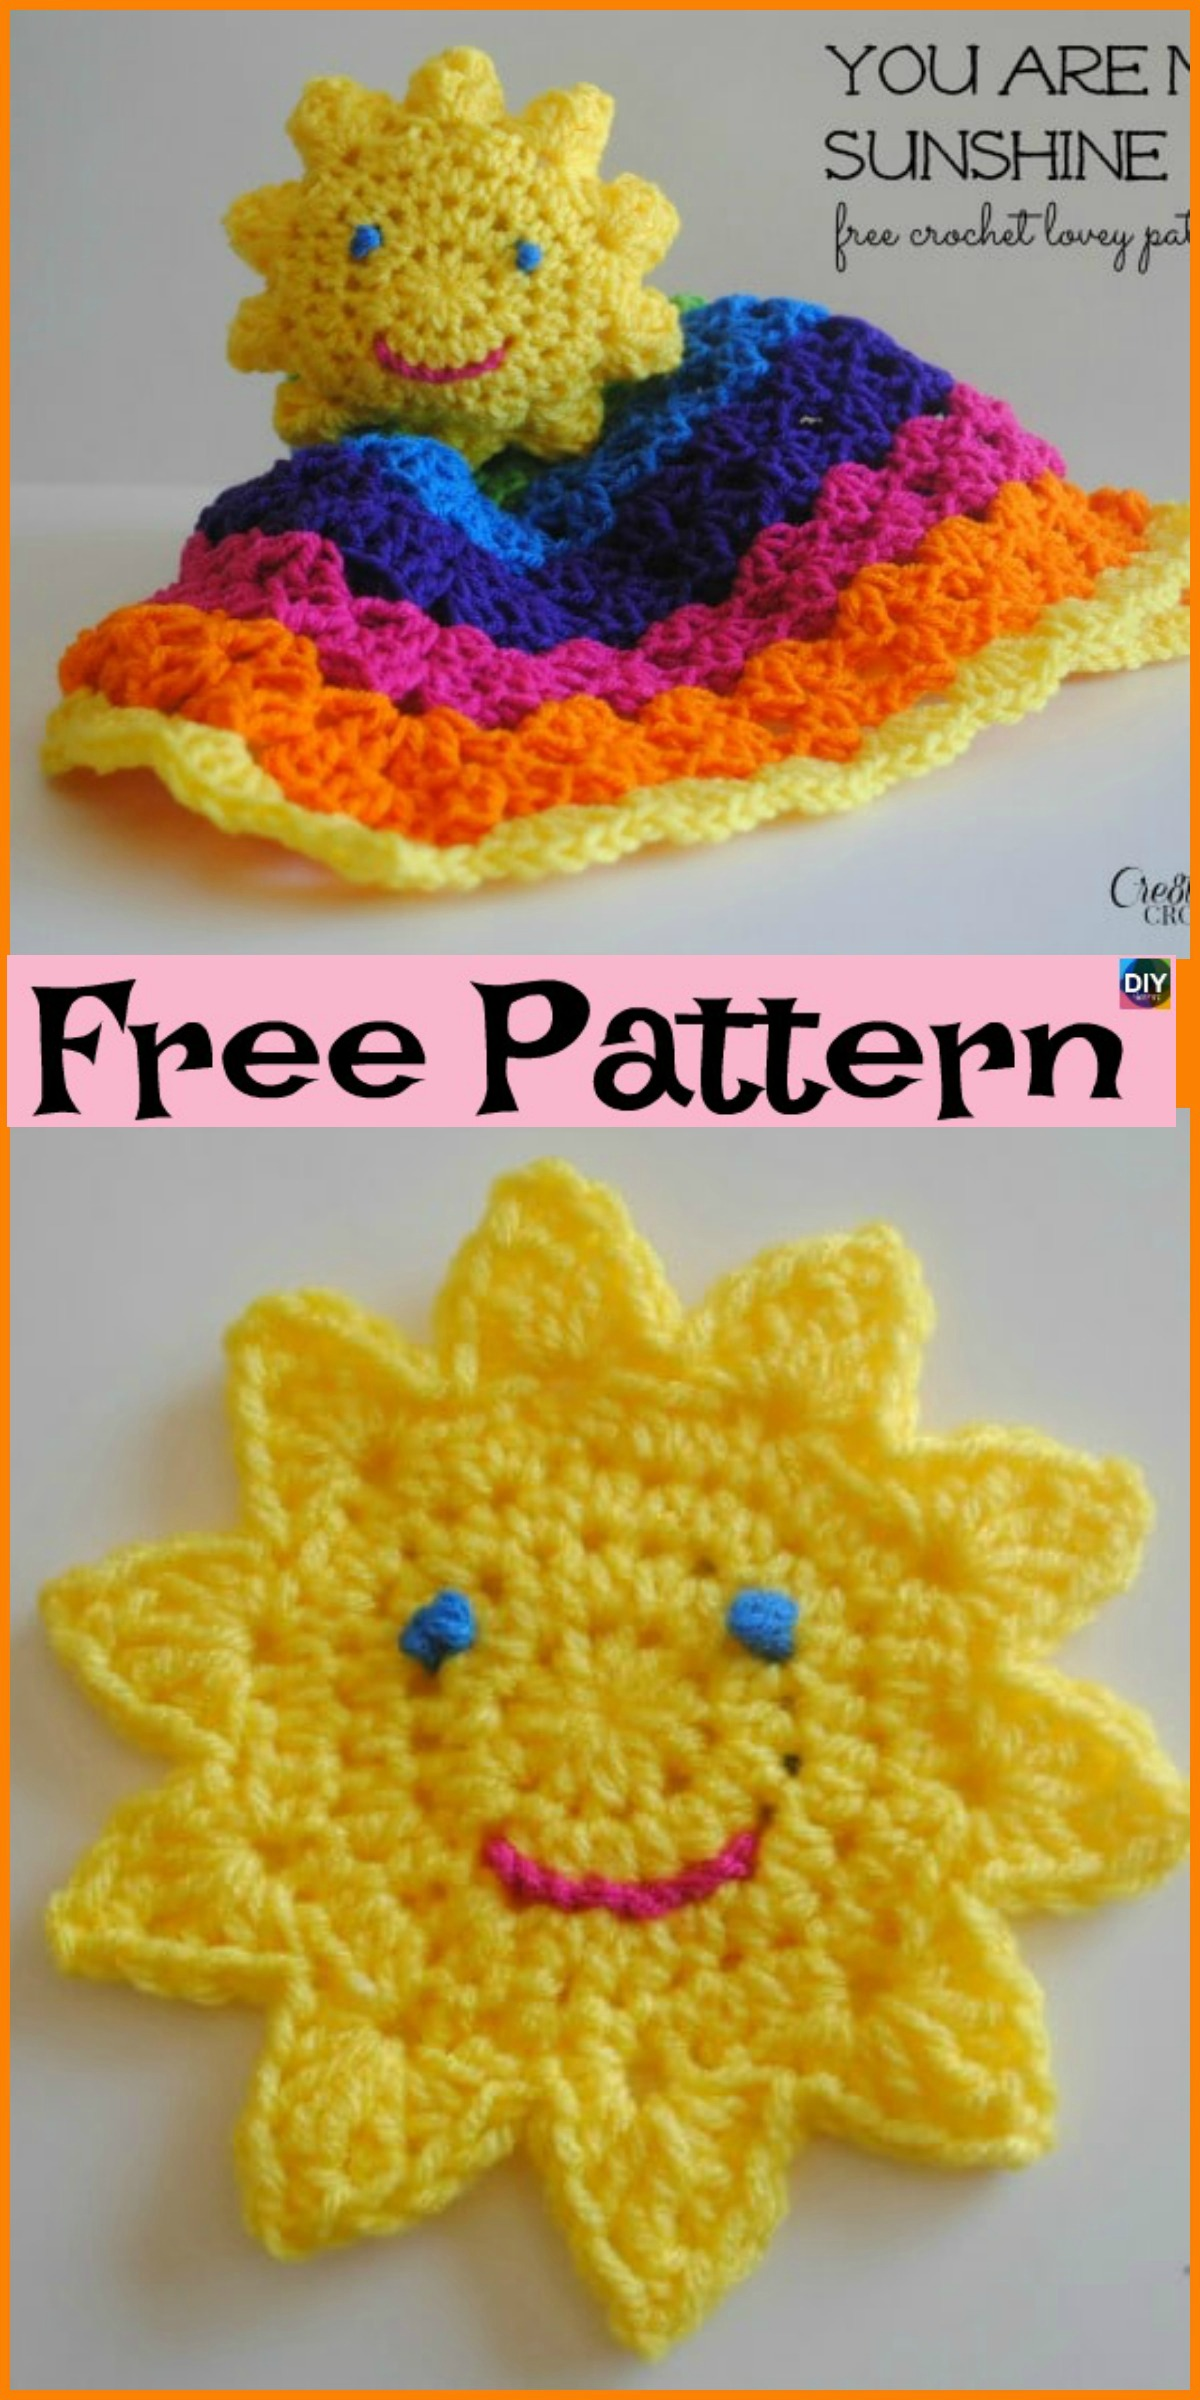 diy4ever Crochet Sun Rainbow Lovey Free Pattern P1 - Colorful Crochet Sun Rainbow Lovey - Free Pattern